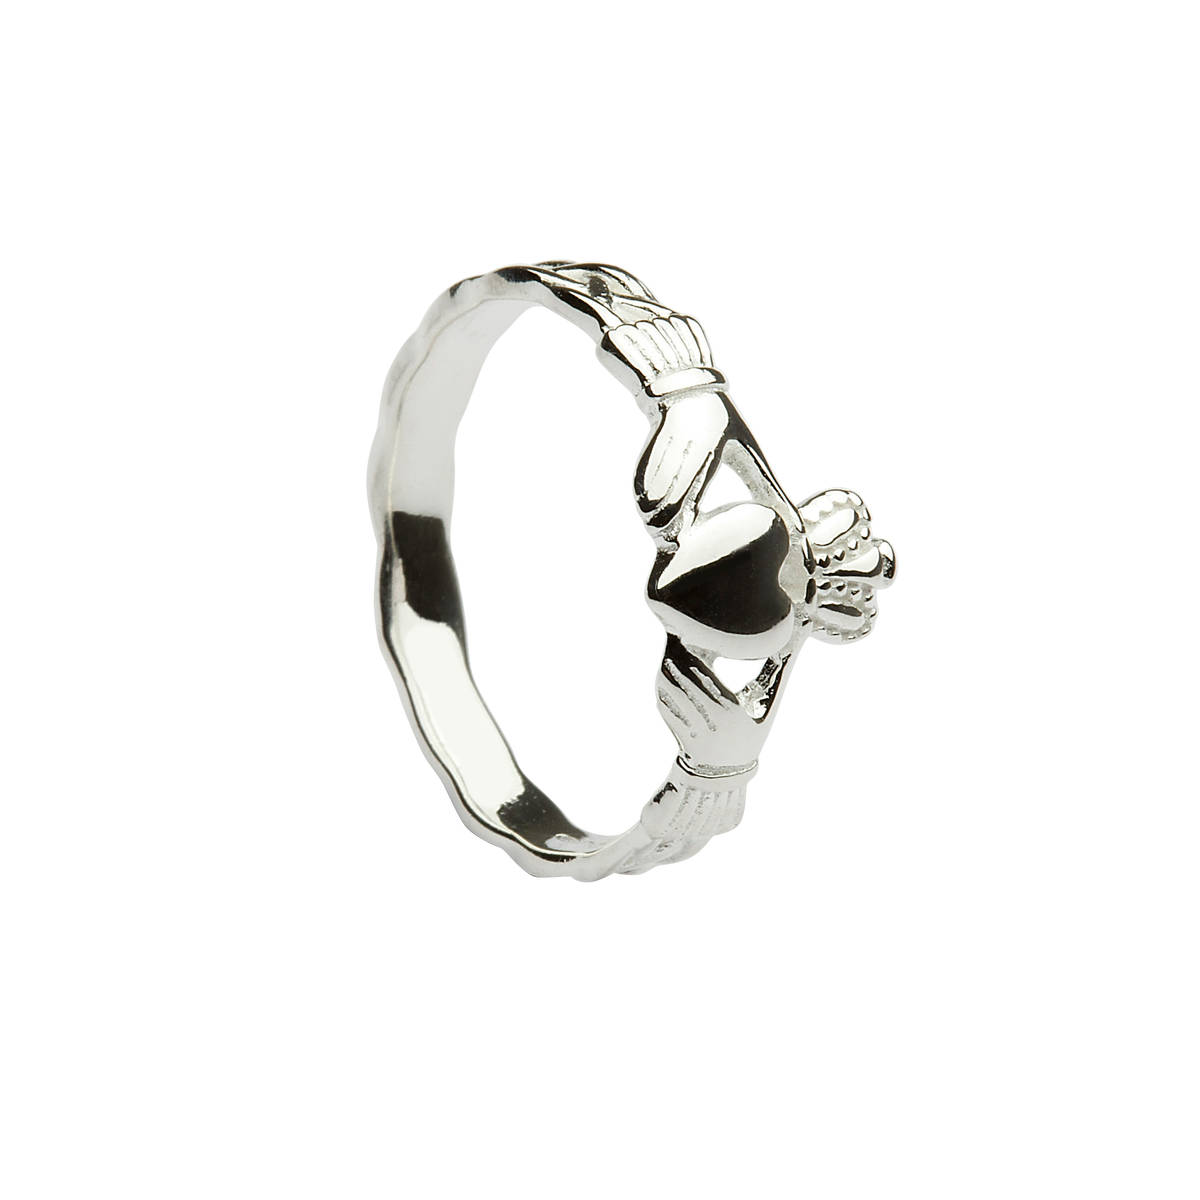 Silver traditional maiden's claddagh ring